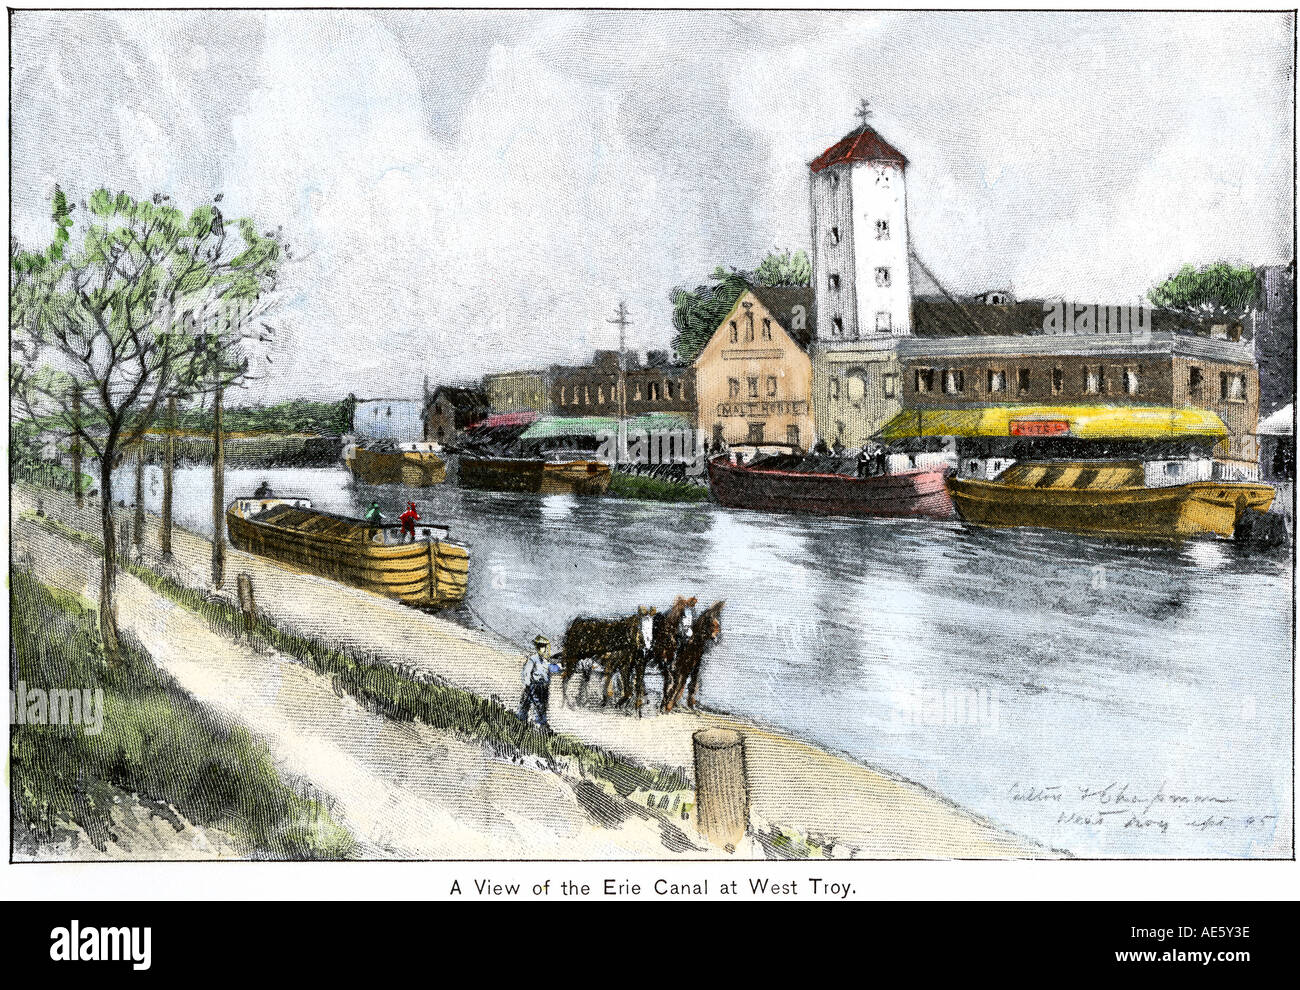 Erie Canal at West Troy New York late 1800s. Hand-colored halftone of an illustration - Stock Image